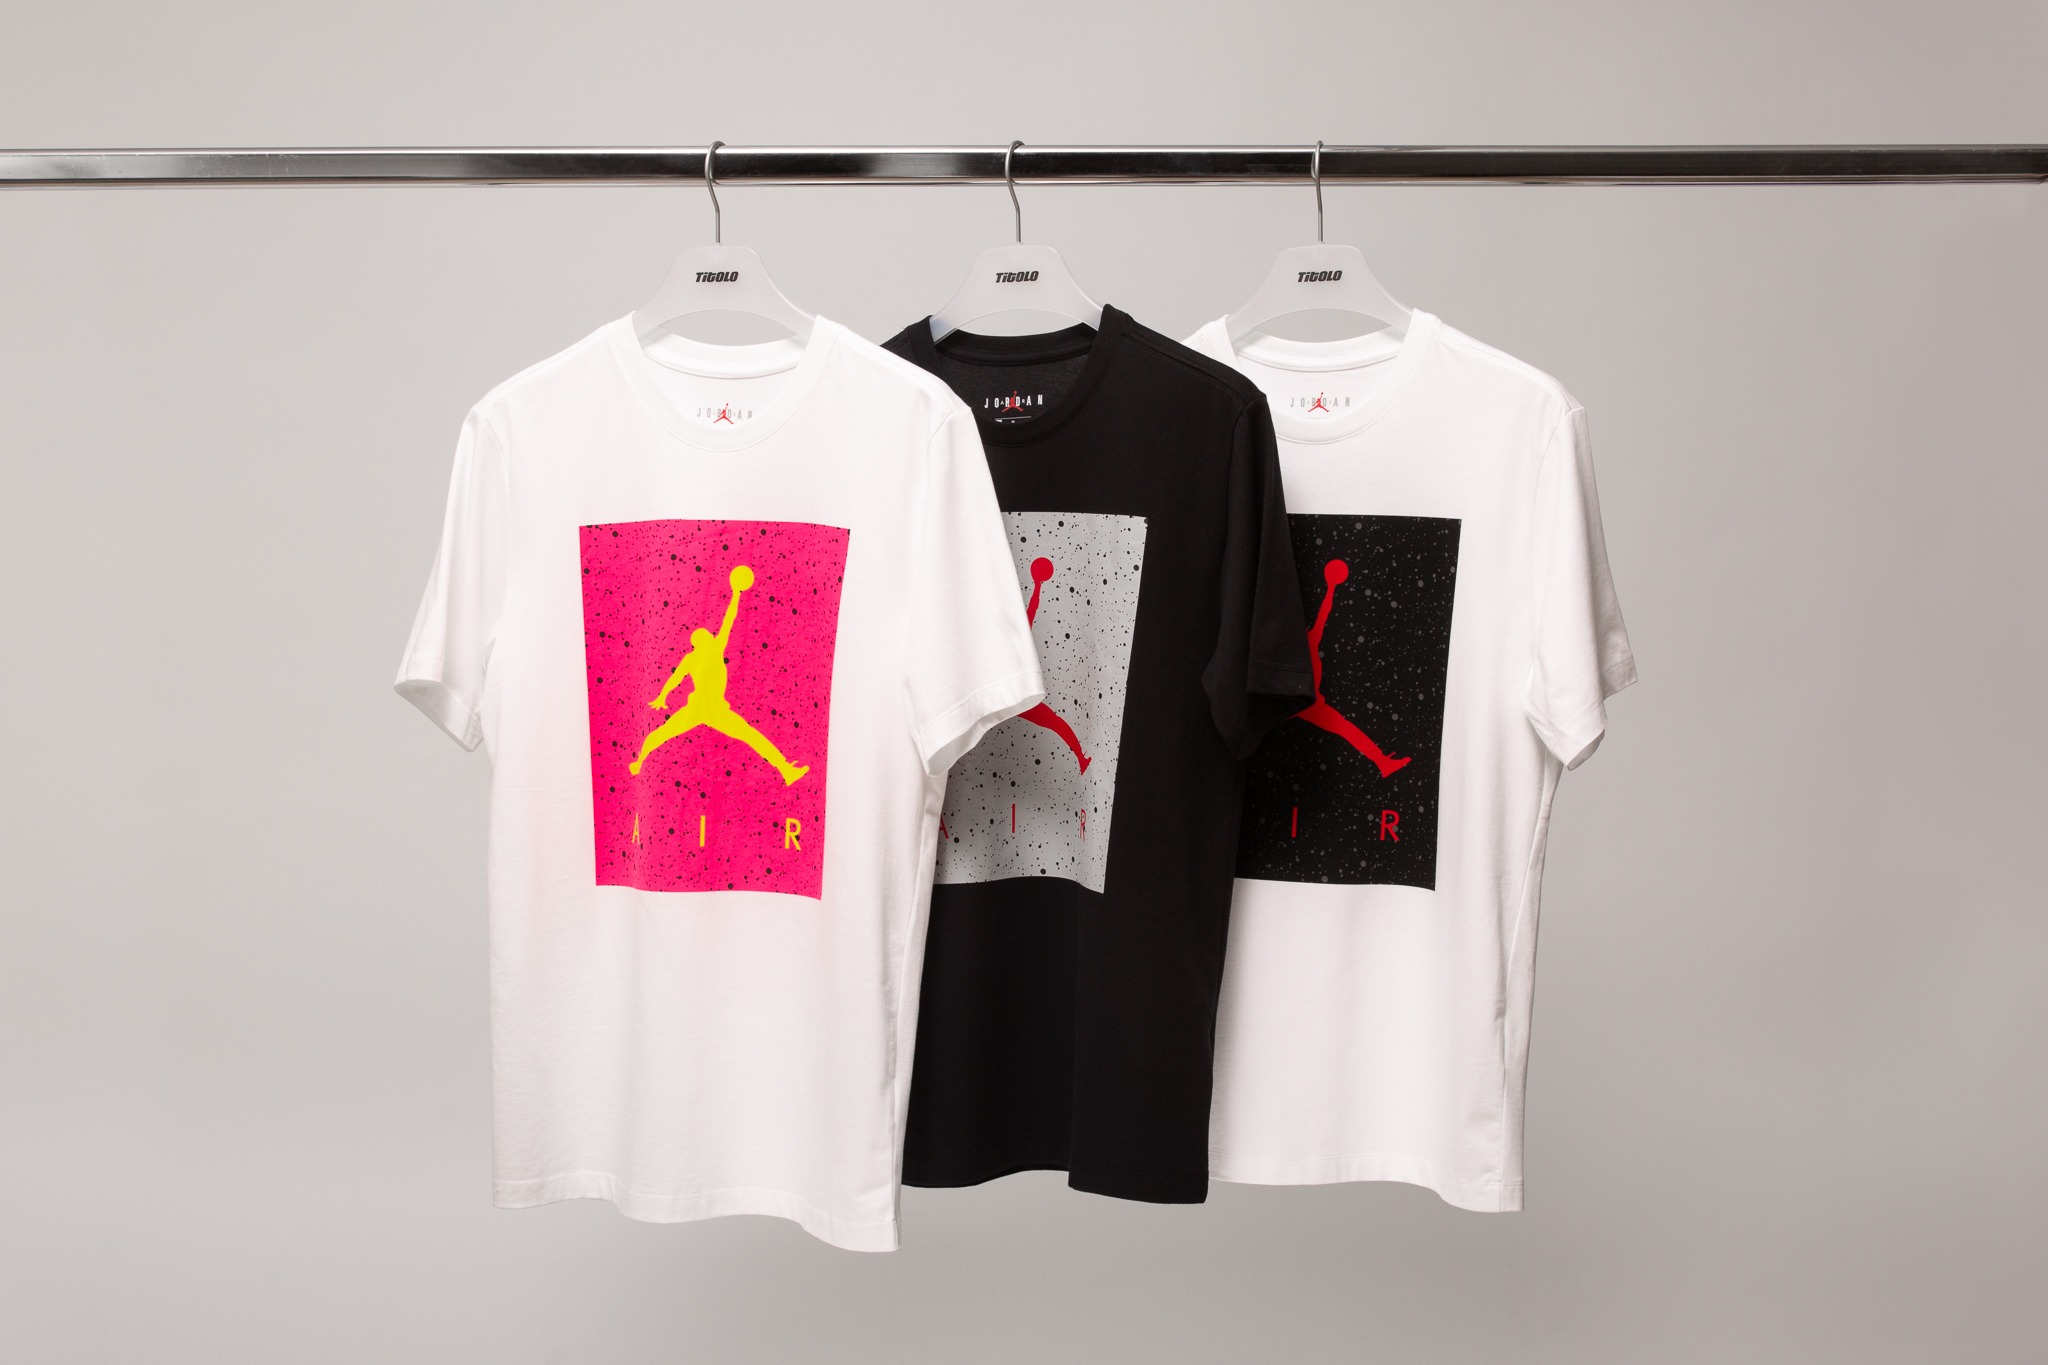 26cf5aa37cf With poolside weather here, Jordan Brand has released a collection of the  Poolside SS CTN Crew T-Shirt. Cotton blend built, the t-shirts feature the  Jumpman ...